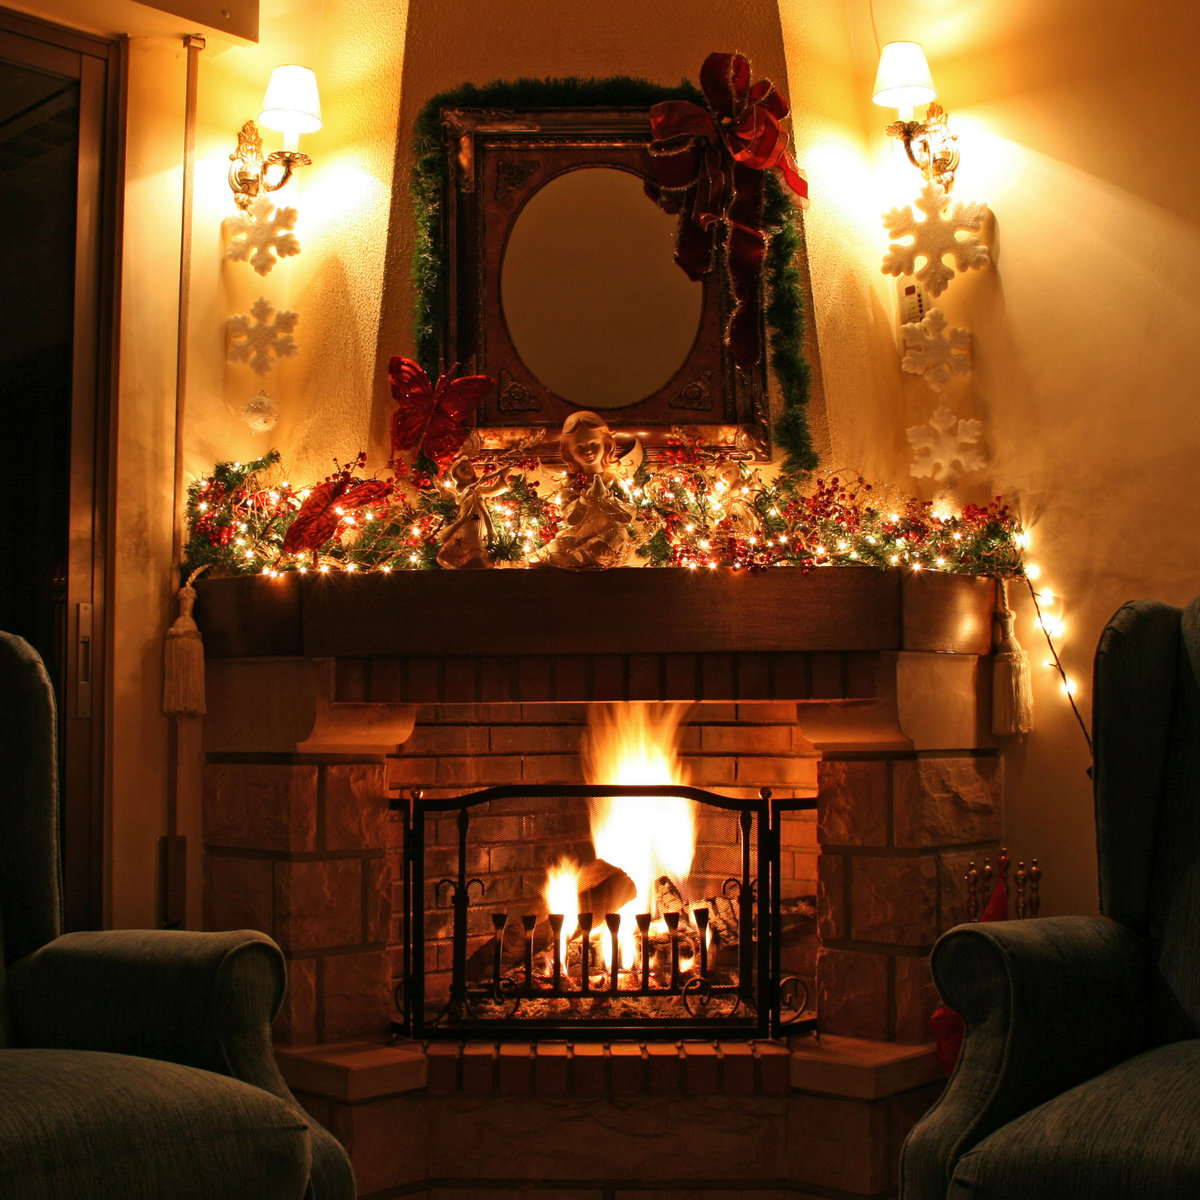 Relaxing Fire Sound 1 hour - Christmas Fireplace with